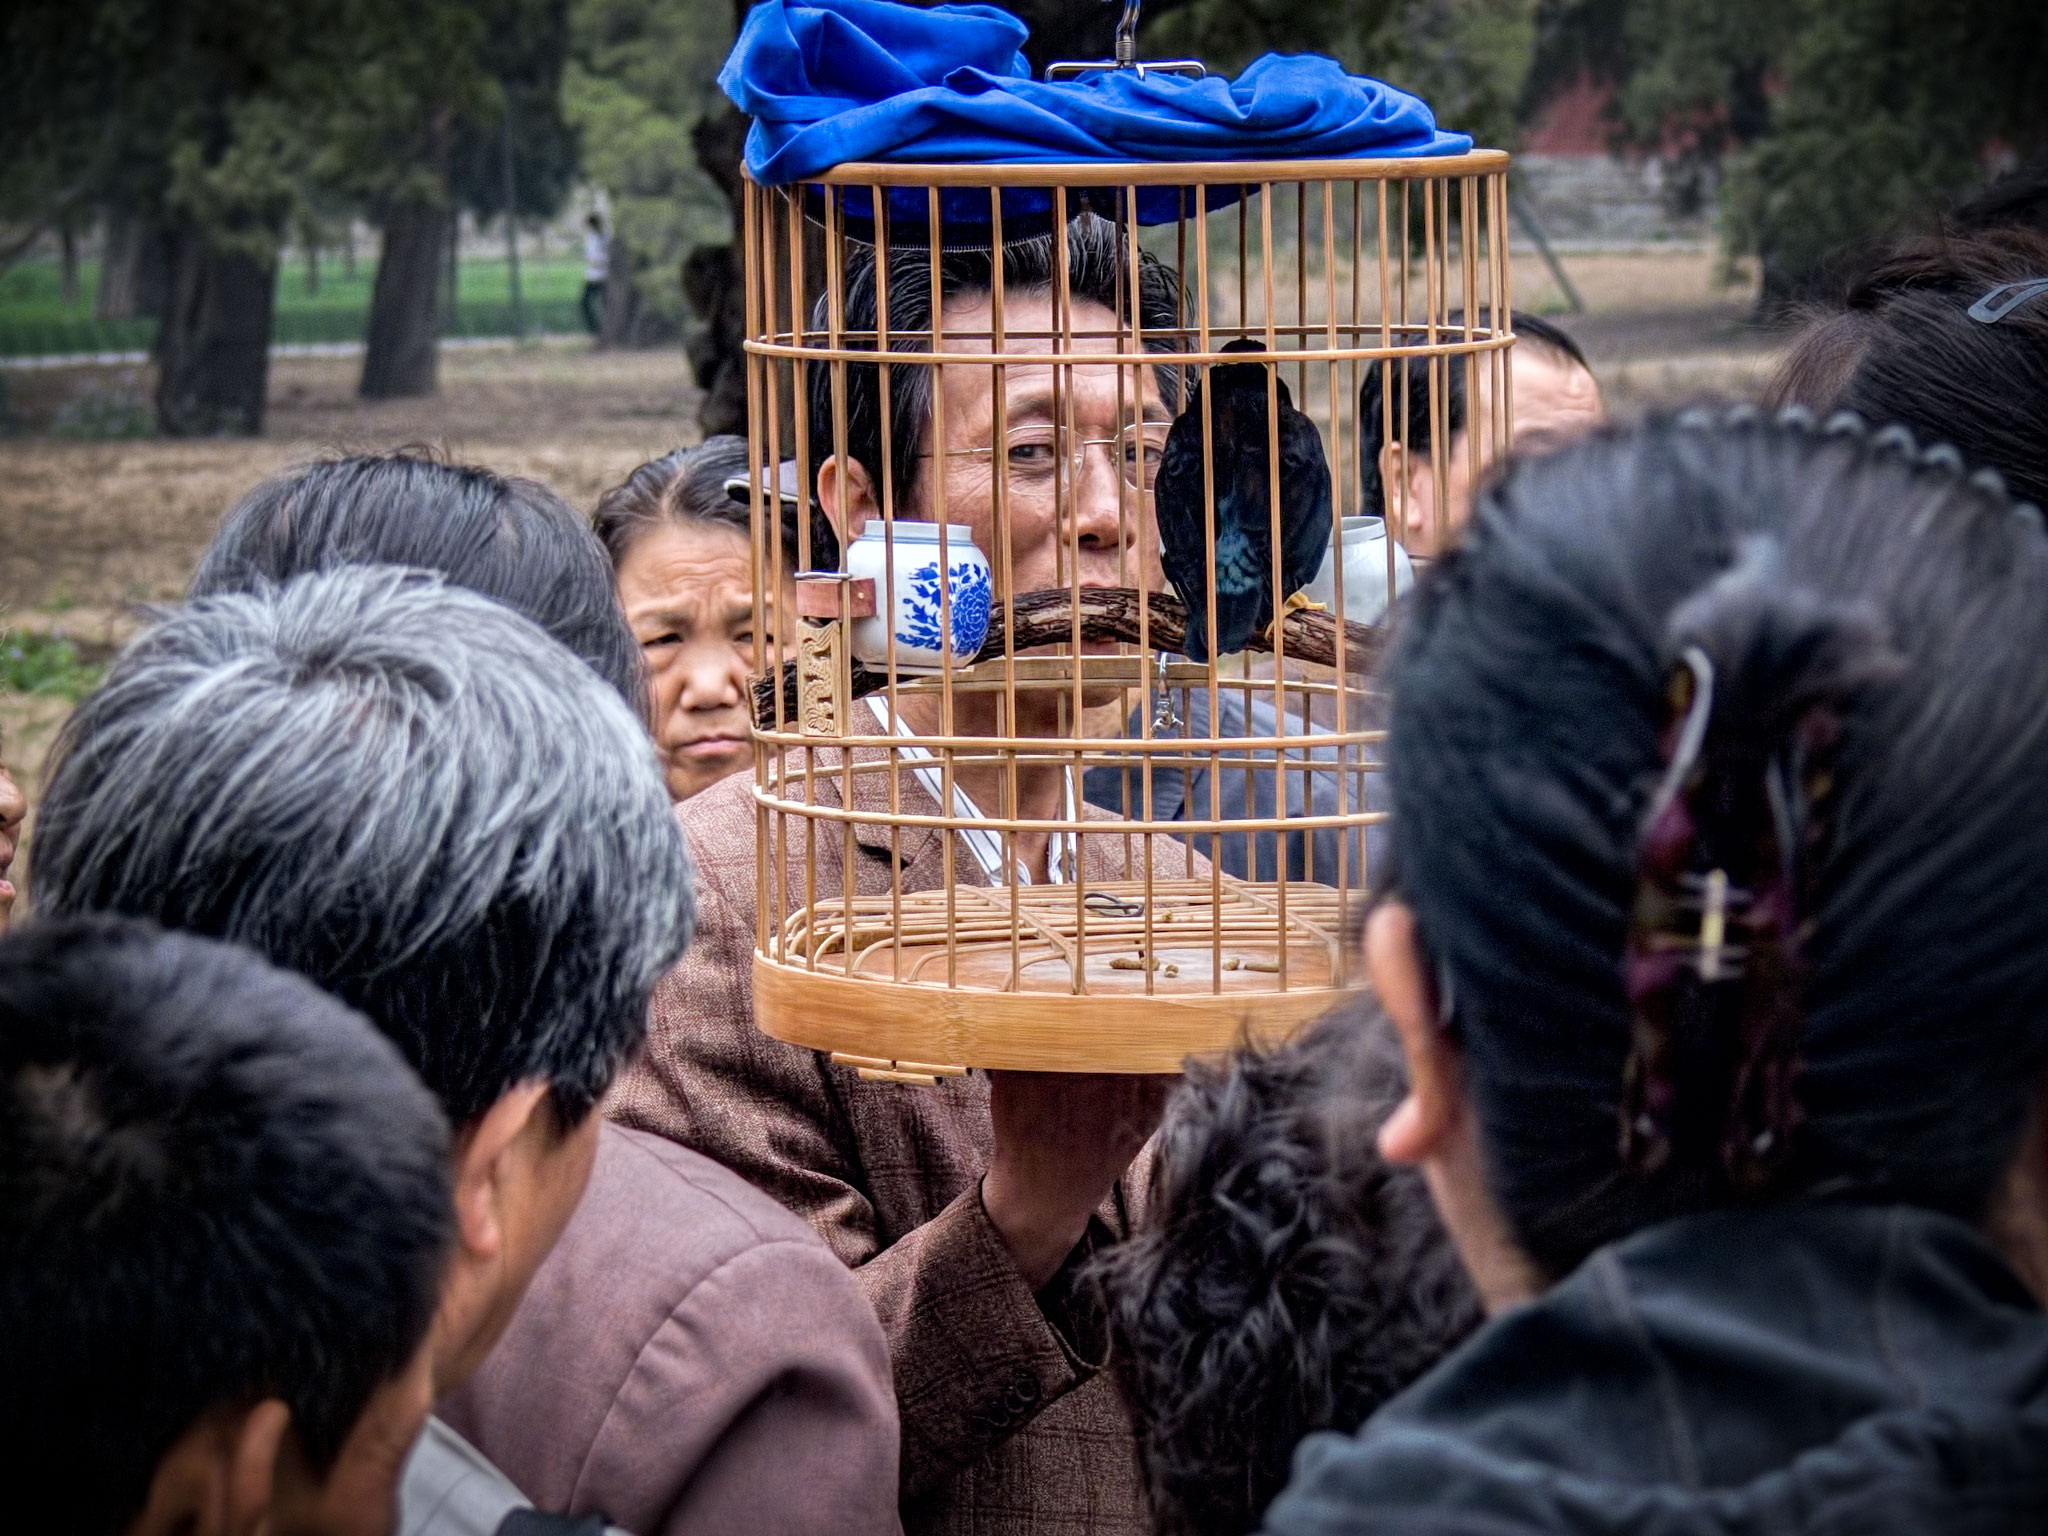 Photo: The Bird Trainer The captive learns comfort from its captor.  In the park-like grounds surrounding the Temple of Heaven in Beijing there are several areas where people gather socially. Among the things one might see would be various musicians playing, artists demonstrating their talents and organized exercise, something like line dancing.  There was a small crowd gathered around the man who was holding up a cage with a bird in it. I'm not sure exactly what was special about the bird, or the man, but the social dynamics were quite interesting to watch. I kind of assumed that the bird had been trained in some manner, perhaps to sing or to talk.  #Travel  #China  #Beijing  #TempleOfHeaven  #TalkingBird